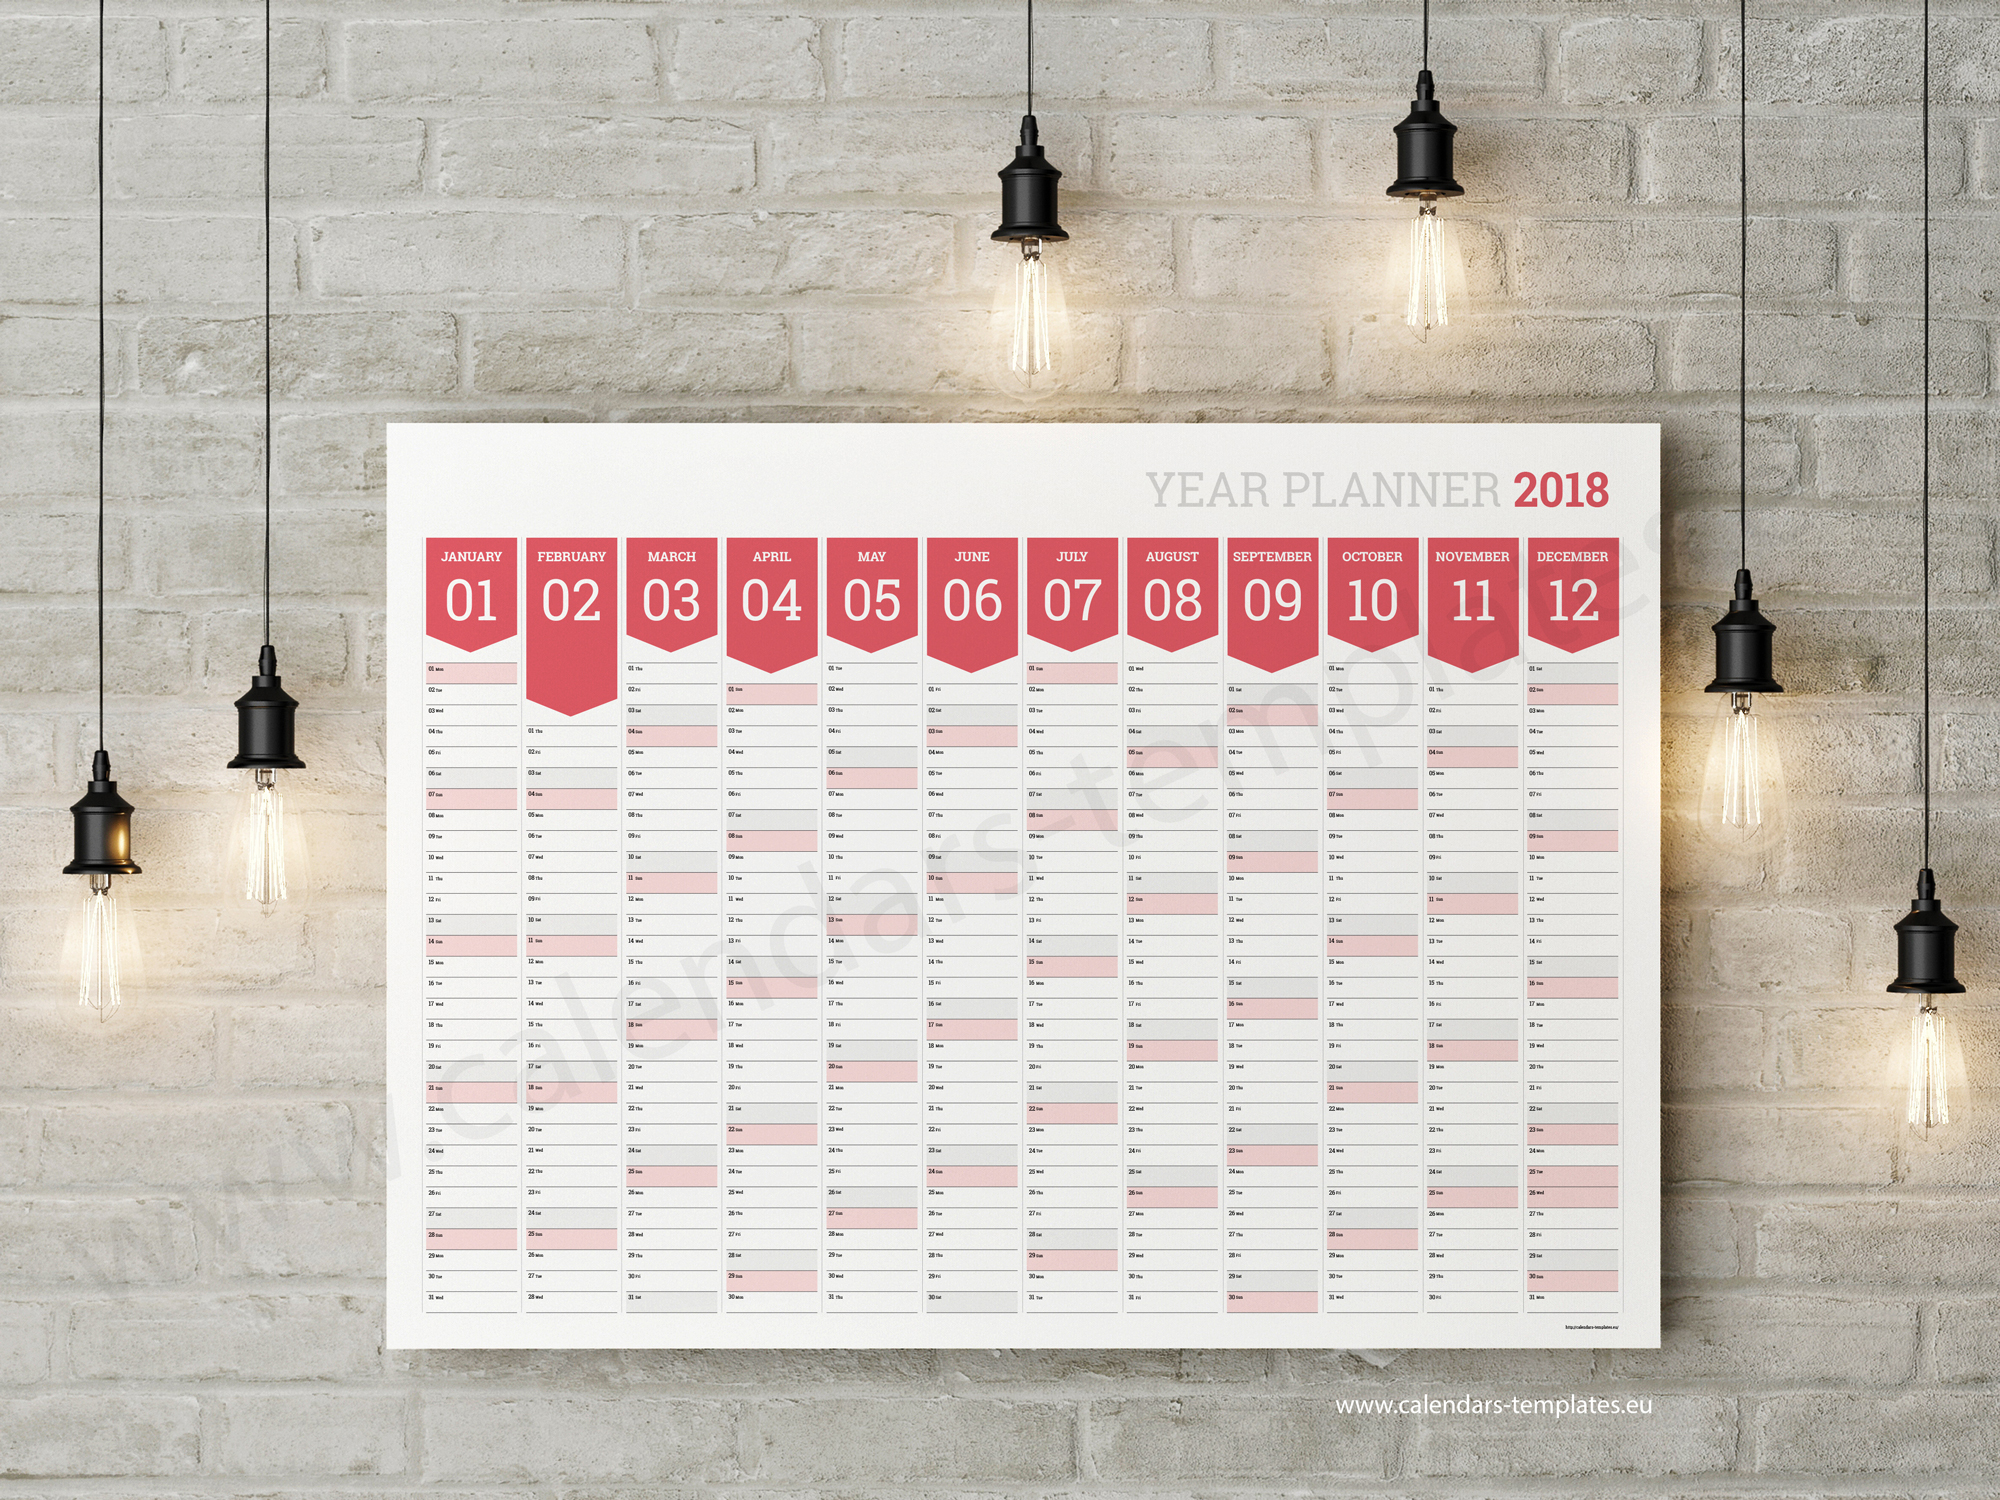 12 Month Wall Calendar Poster 2018 Wall Calendar Poster Horizontal 12 Month Yearly 2018 Horizontal Planner Template Big Printable Blank Wall